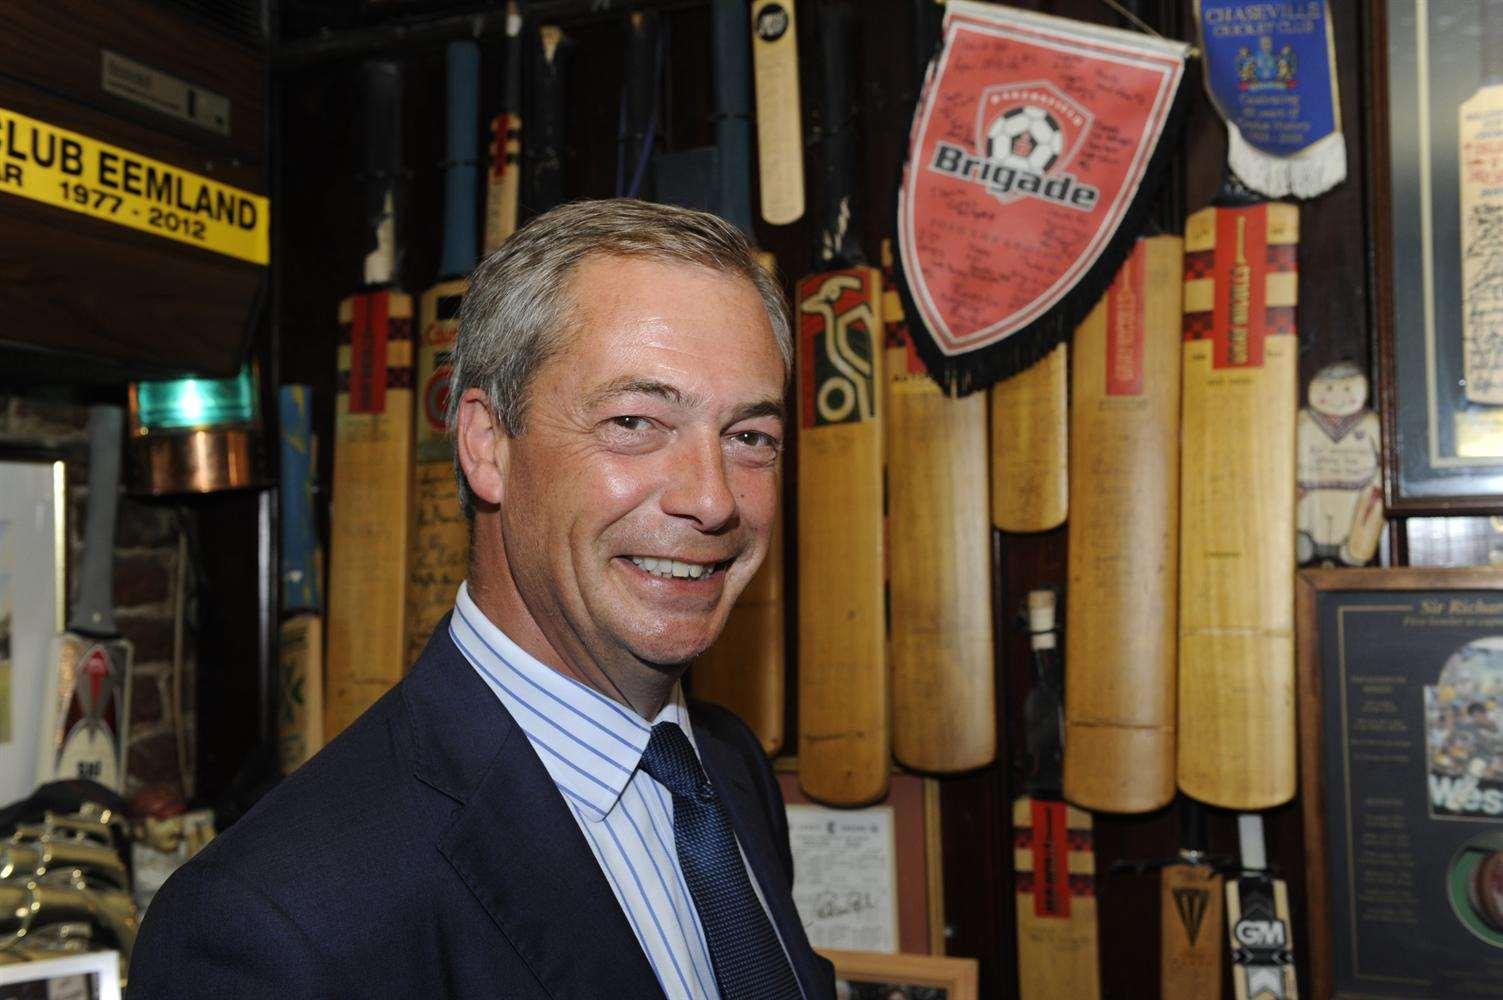 Nigel Farage was the favourite to win the Ukip nomination. Picture: Tony Flashman